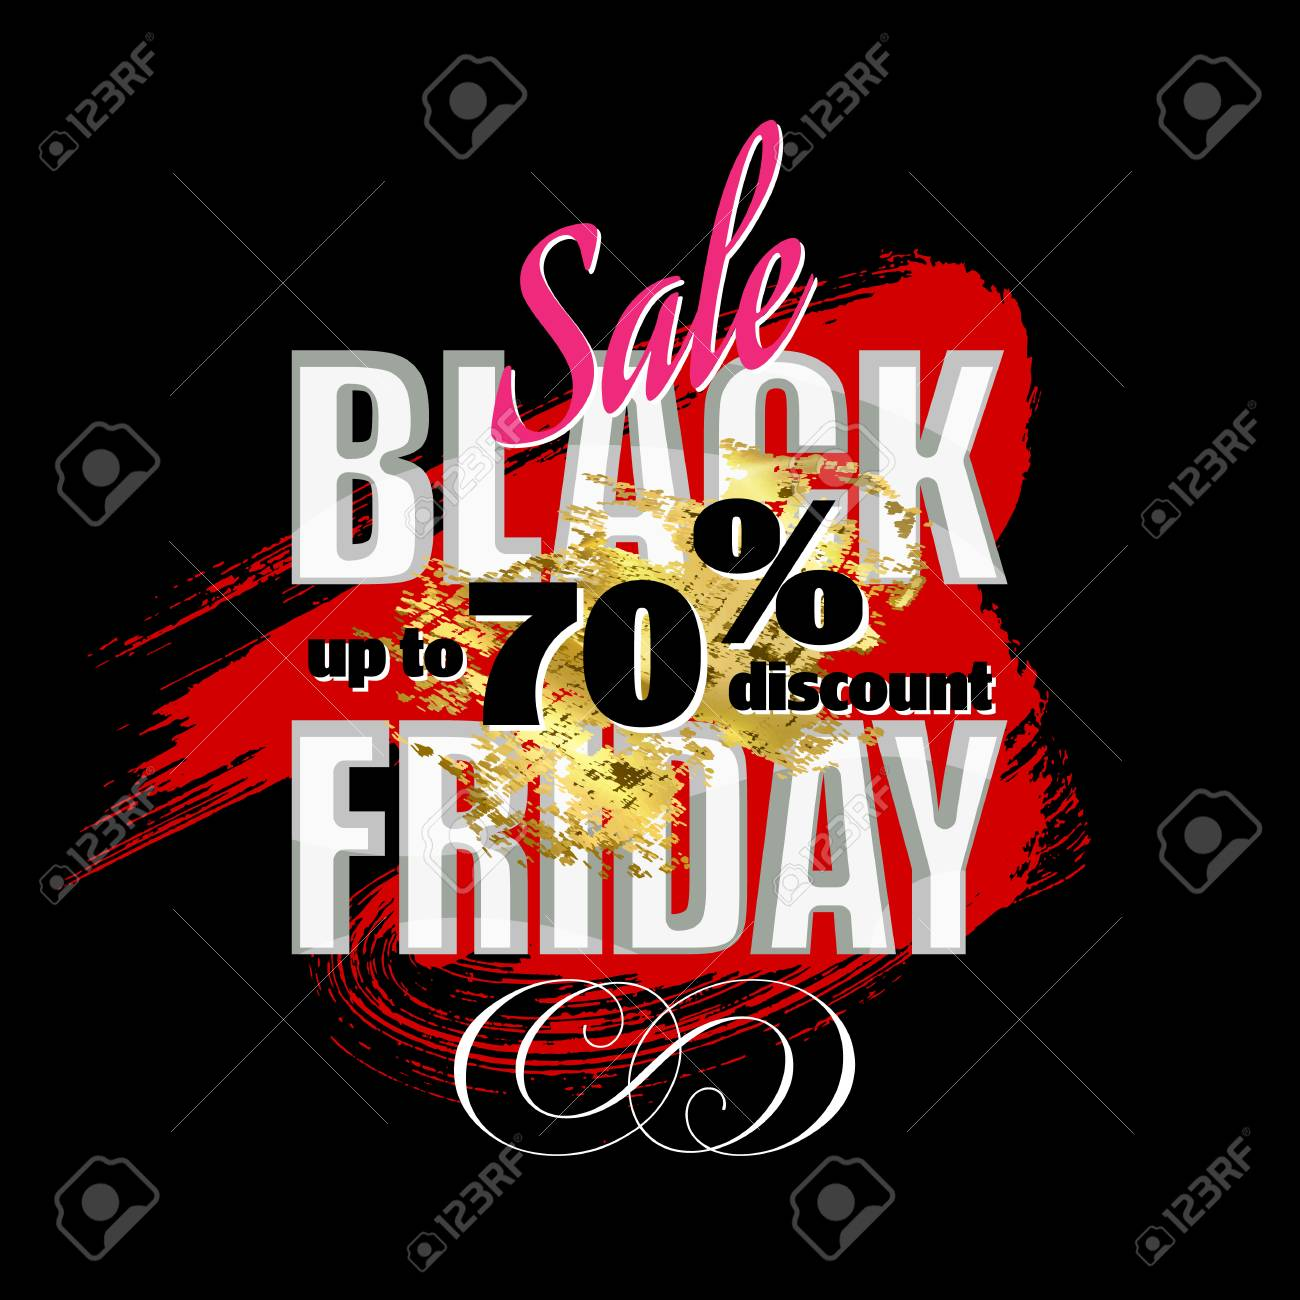 Black Friday Rabatte Black Friday Sale The Banner Template Design Discounts Of Up